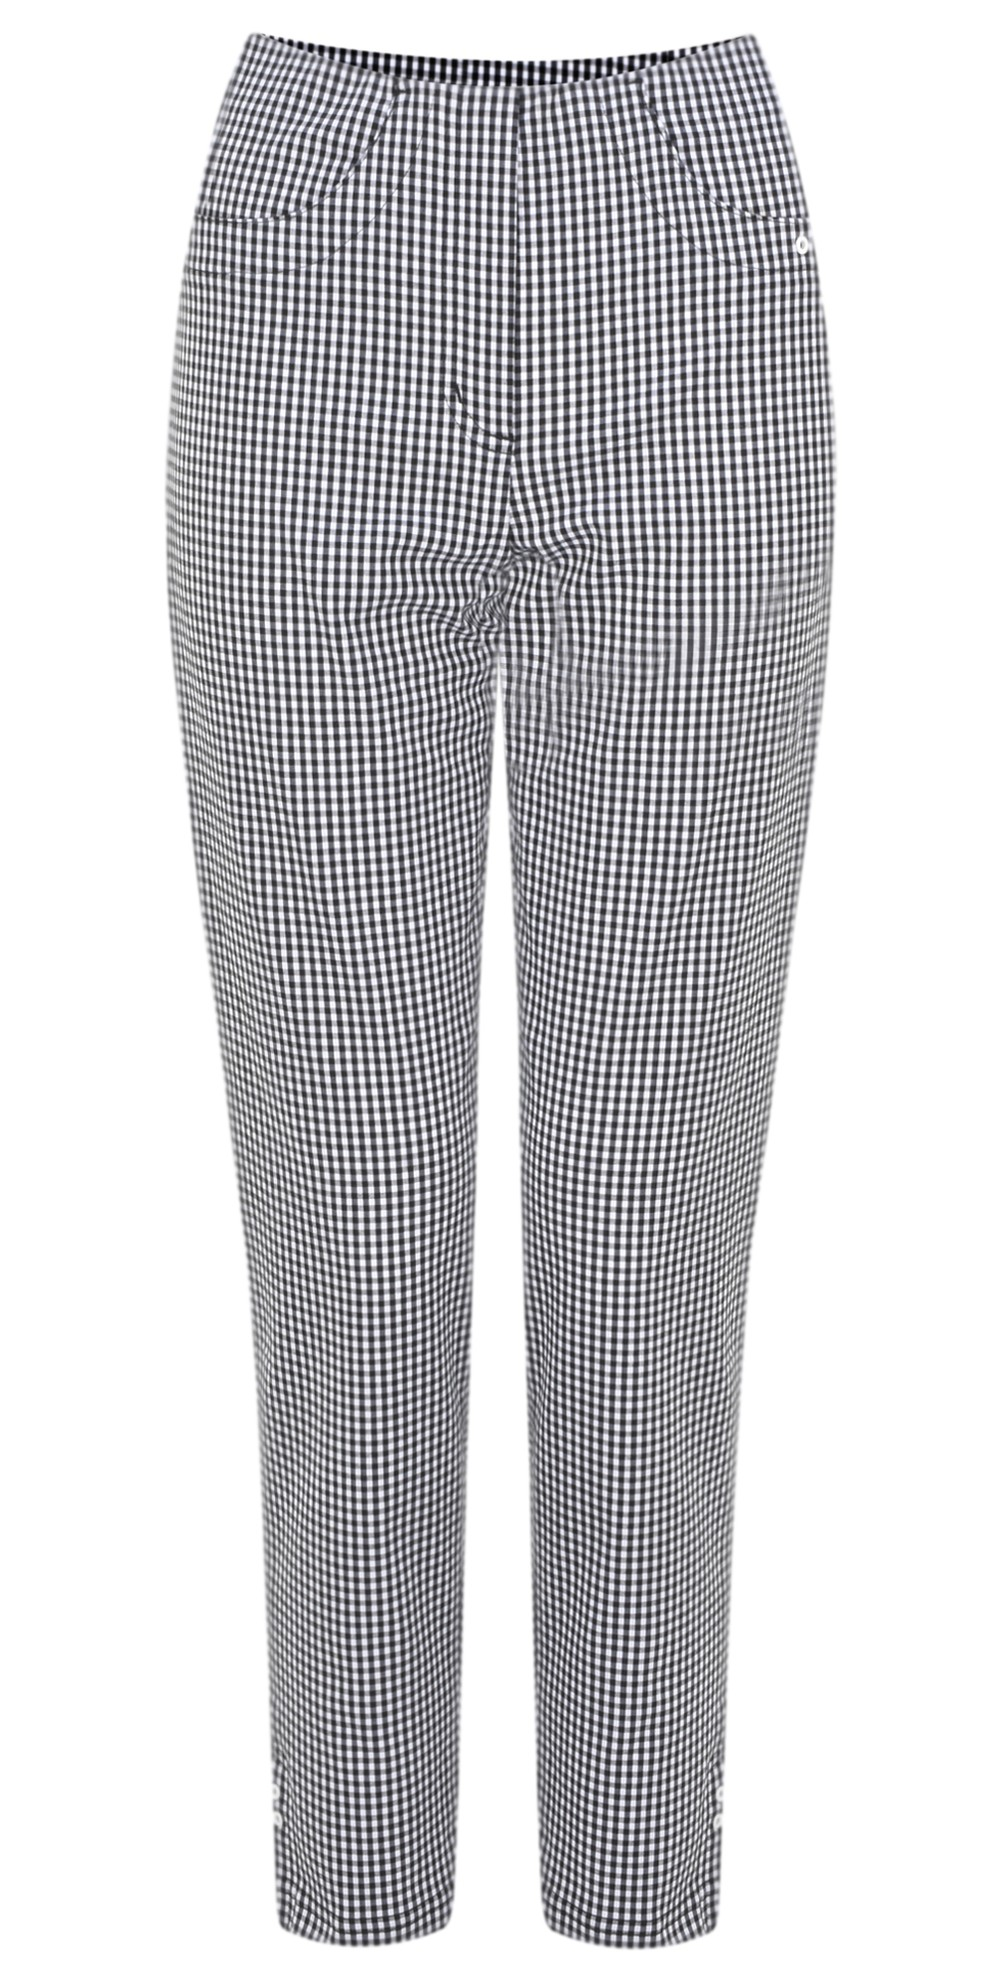 Bella 09 Gingham Check Cropped Trouser main image